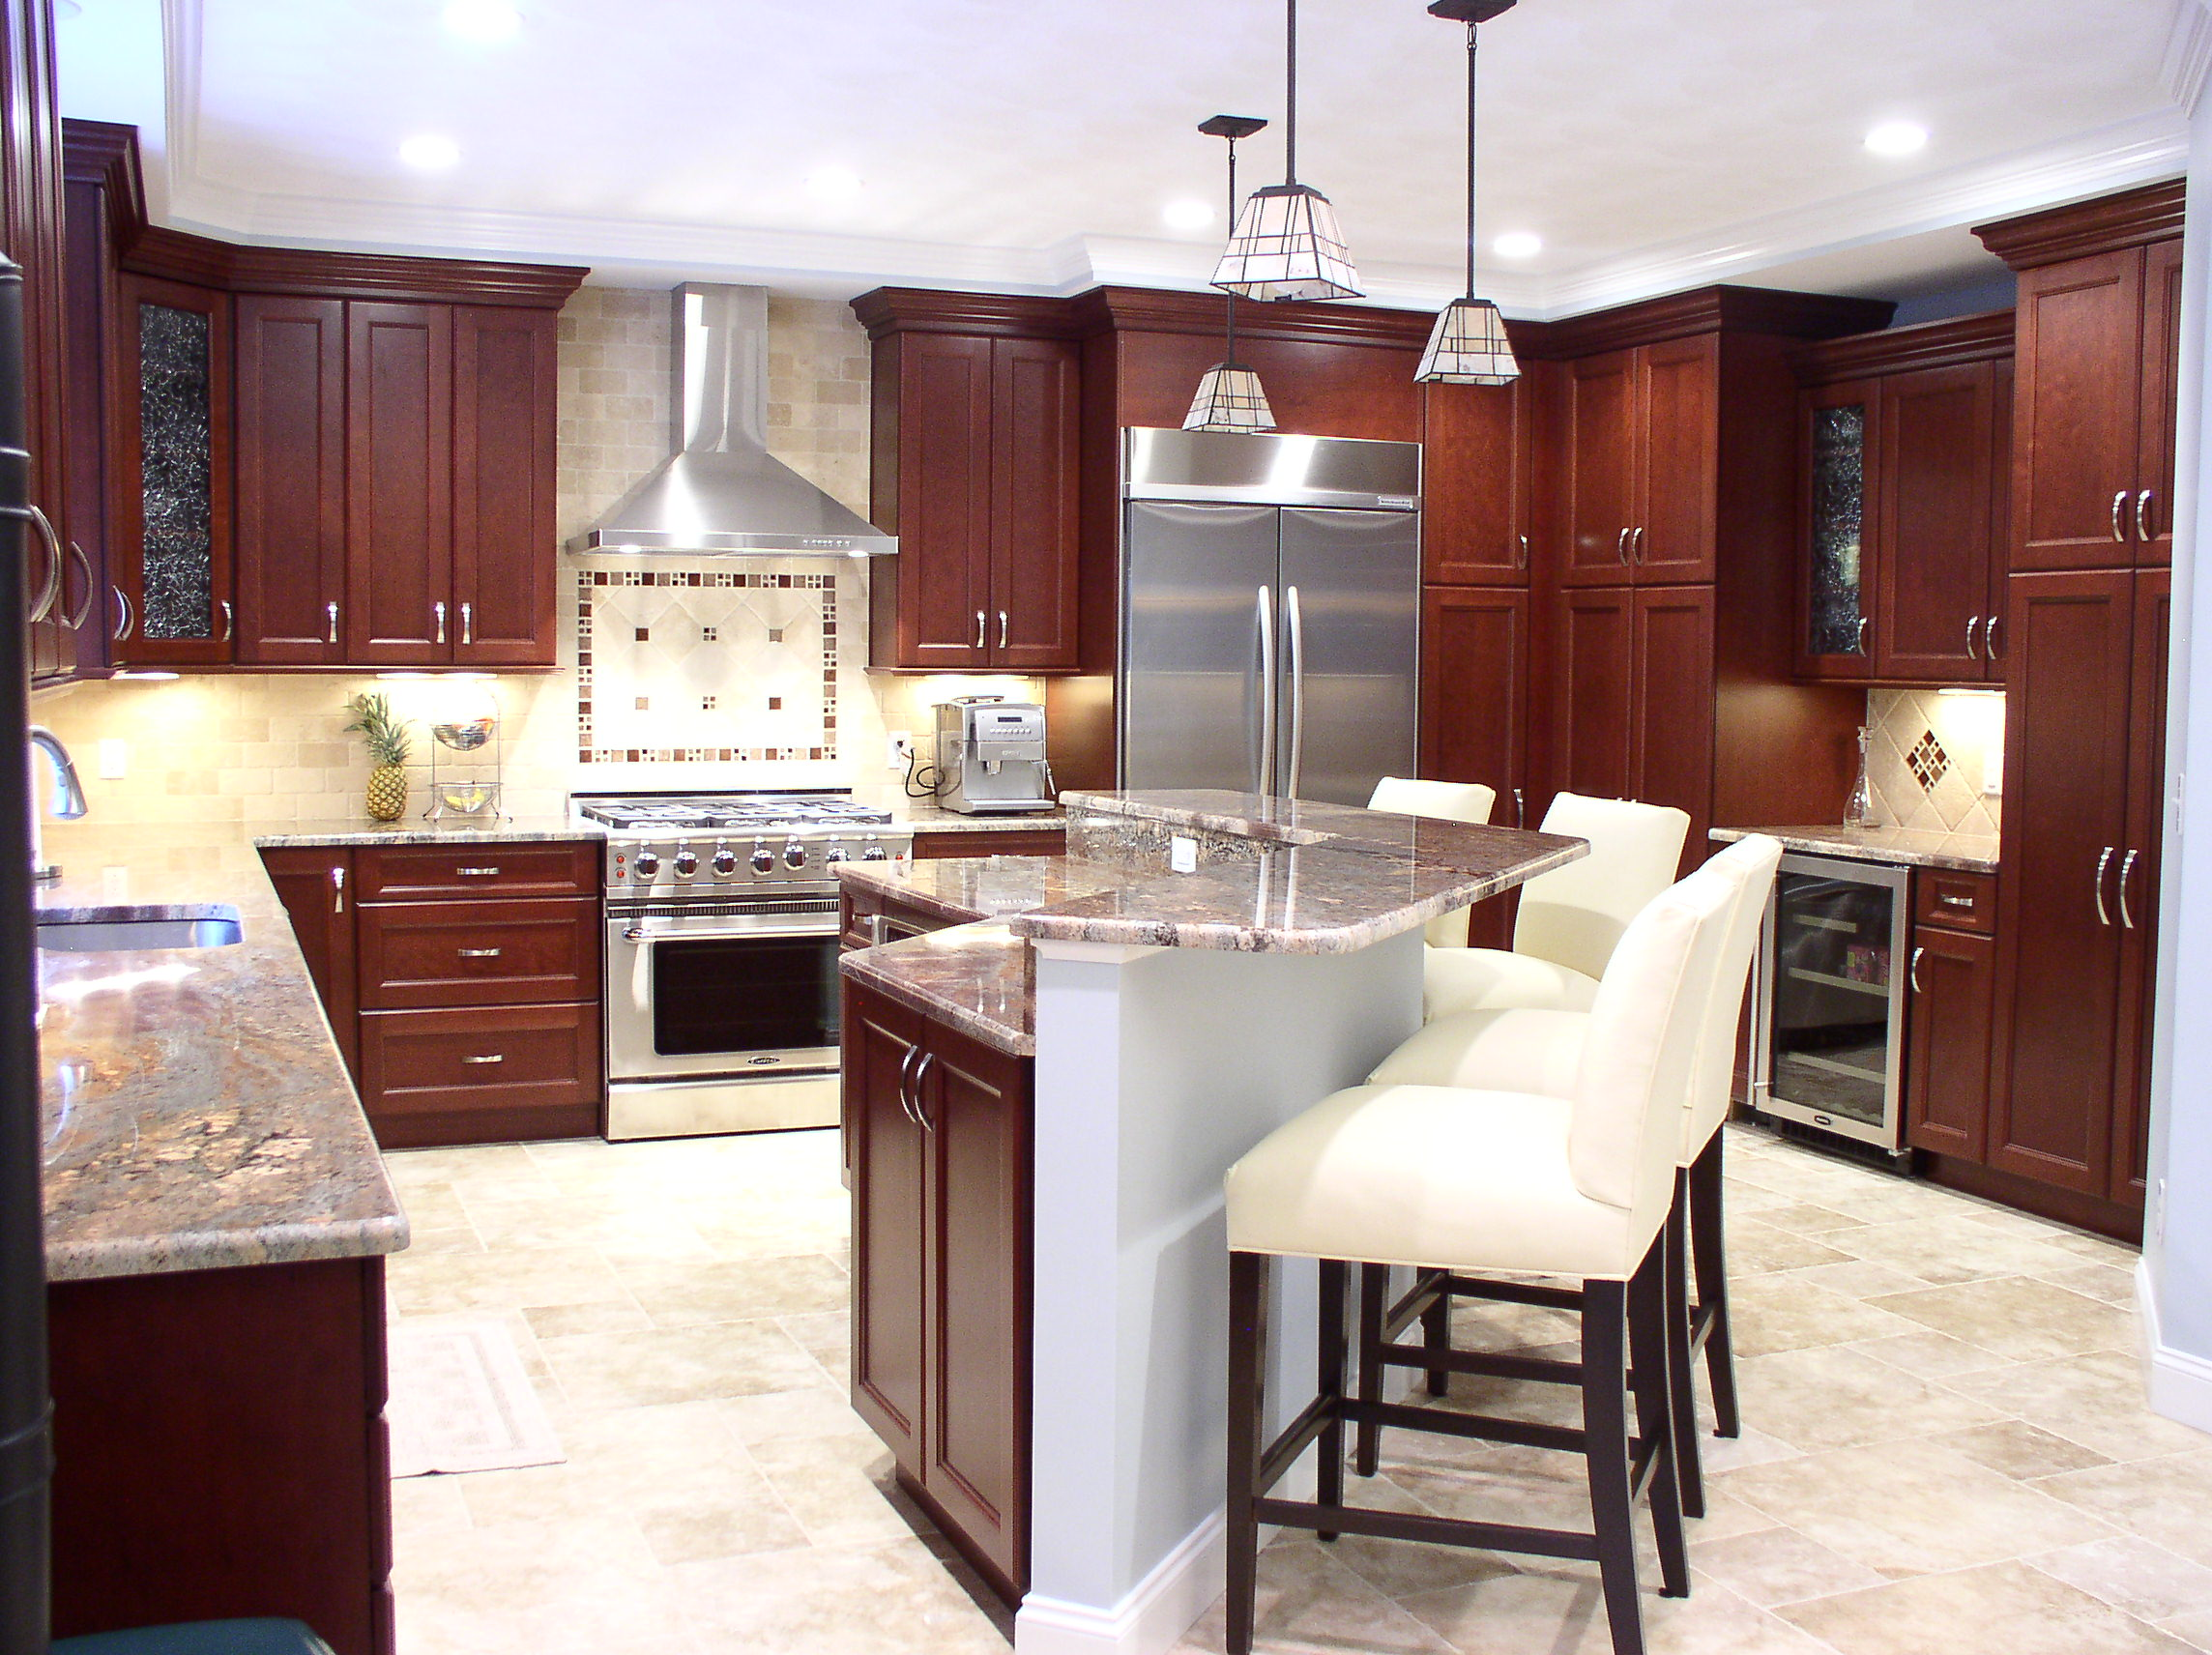 Gentil Sicliano Kitchen. Executive Cabinetry ...